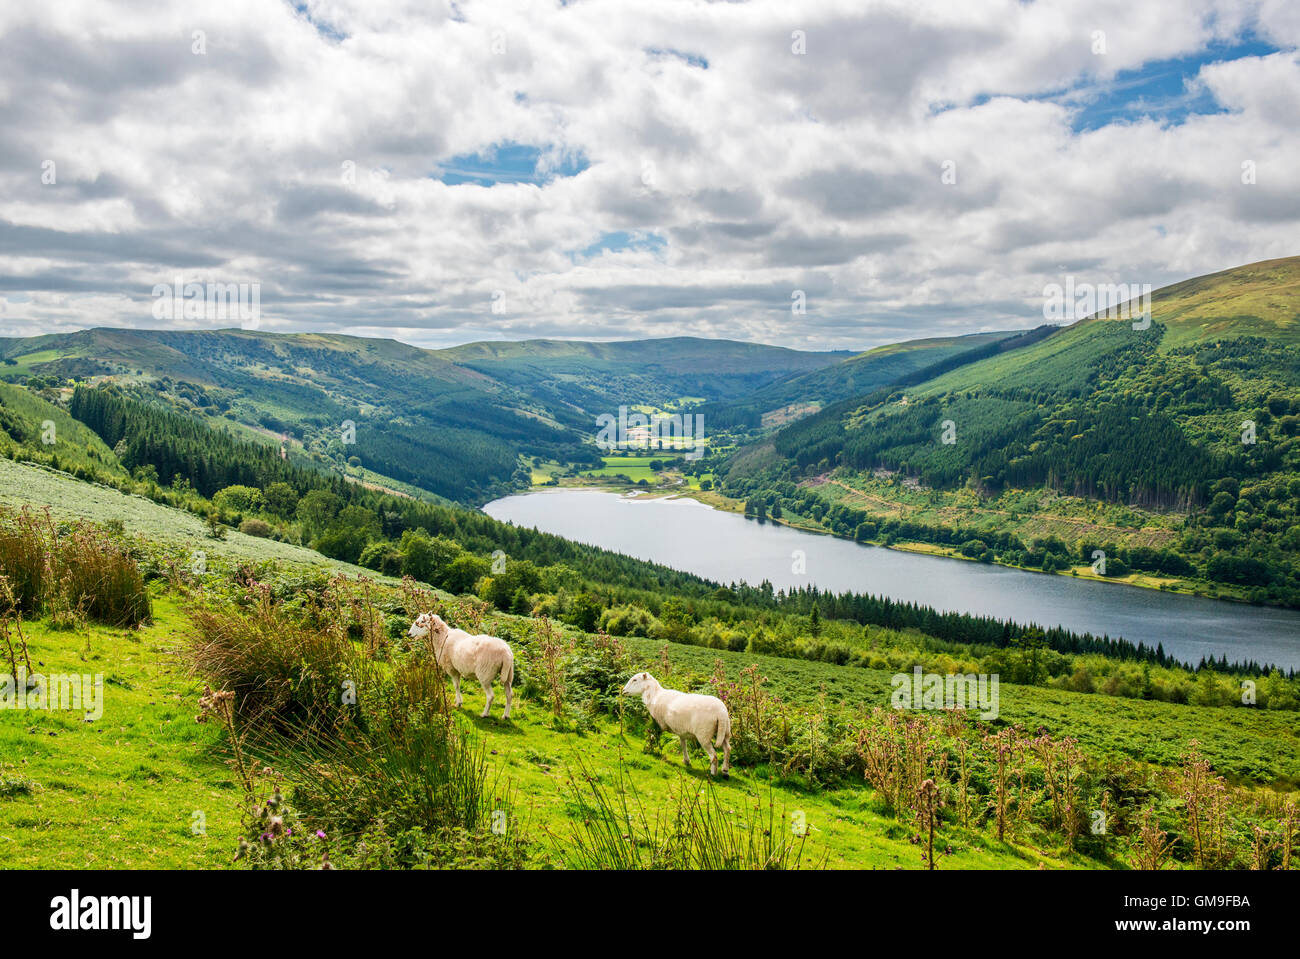 Looking down on to the Talybont Valley and Reservoir in the Central Brecon Beacons National Park on a sunny summer - Stock Image